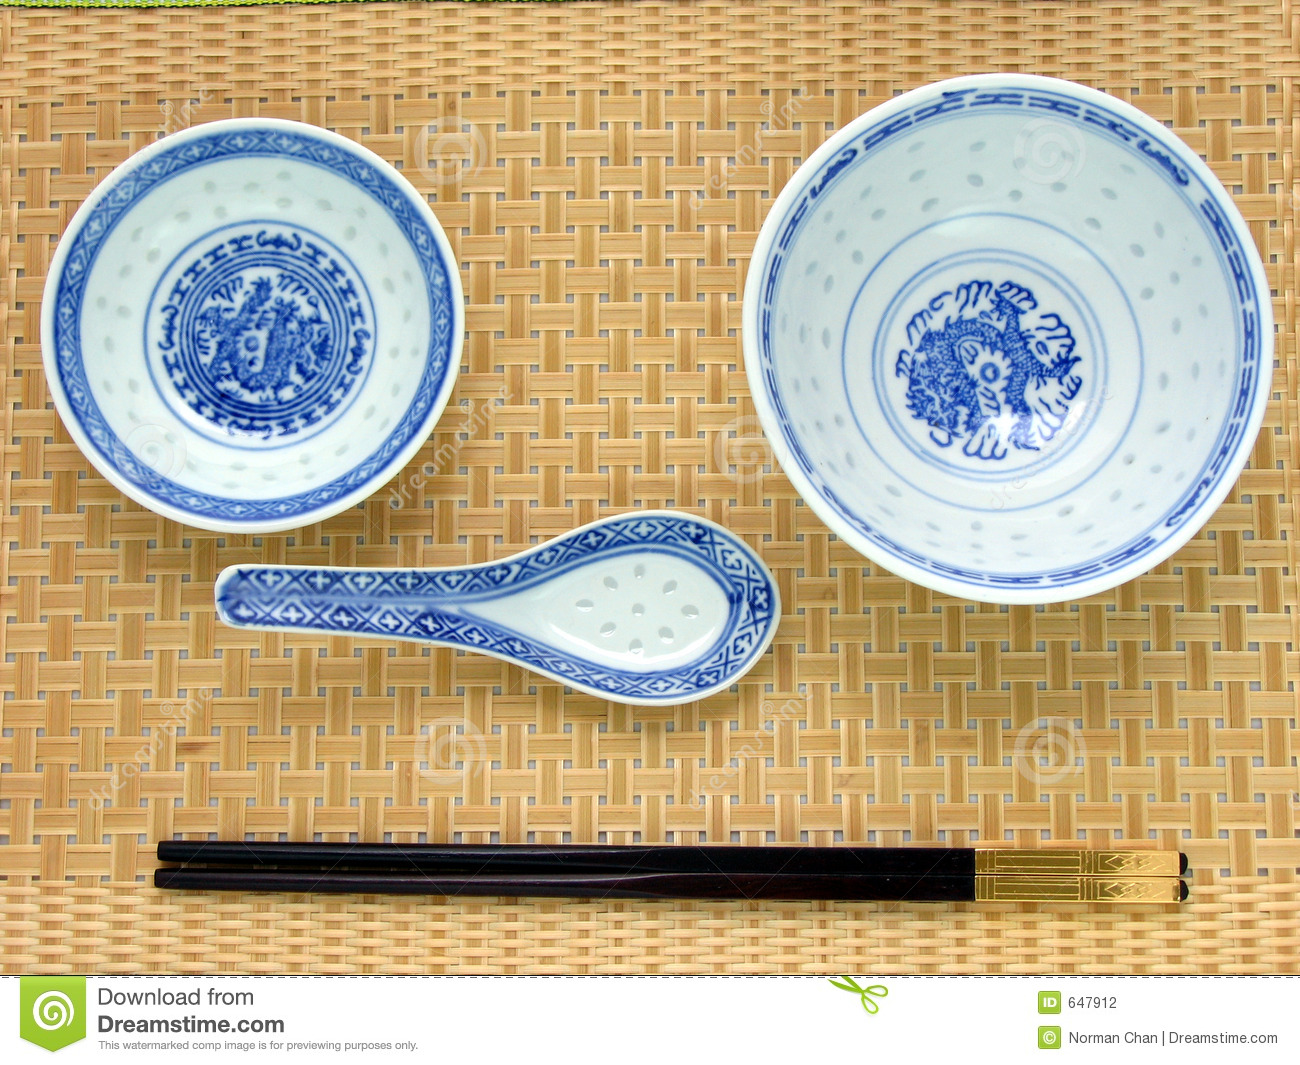 & Chinese Table Setting Stock Photos - 2382 Images